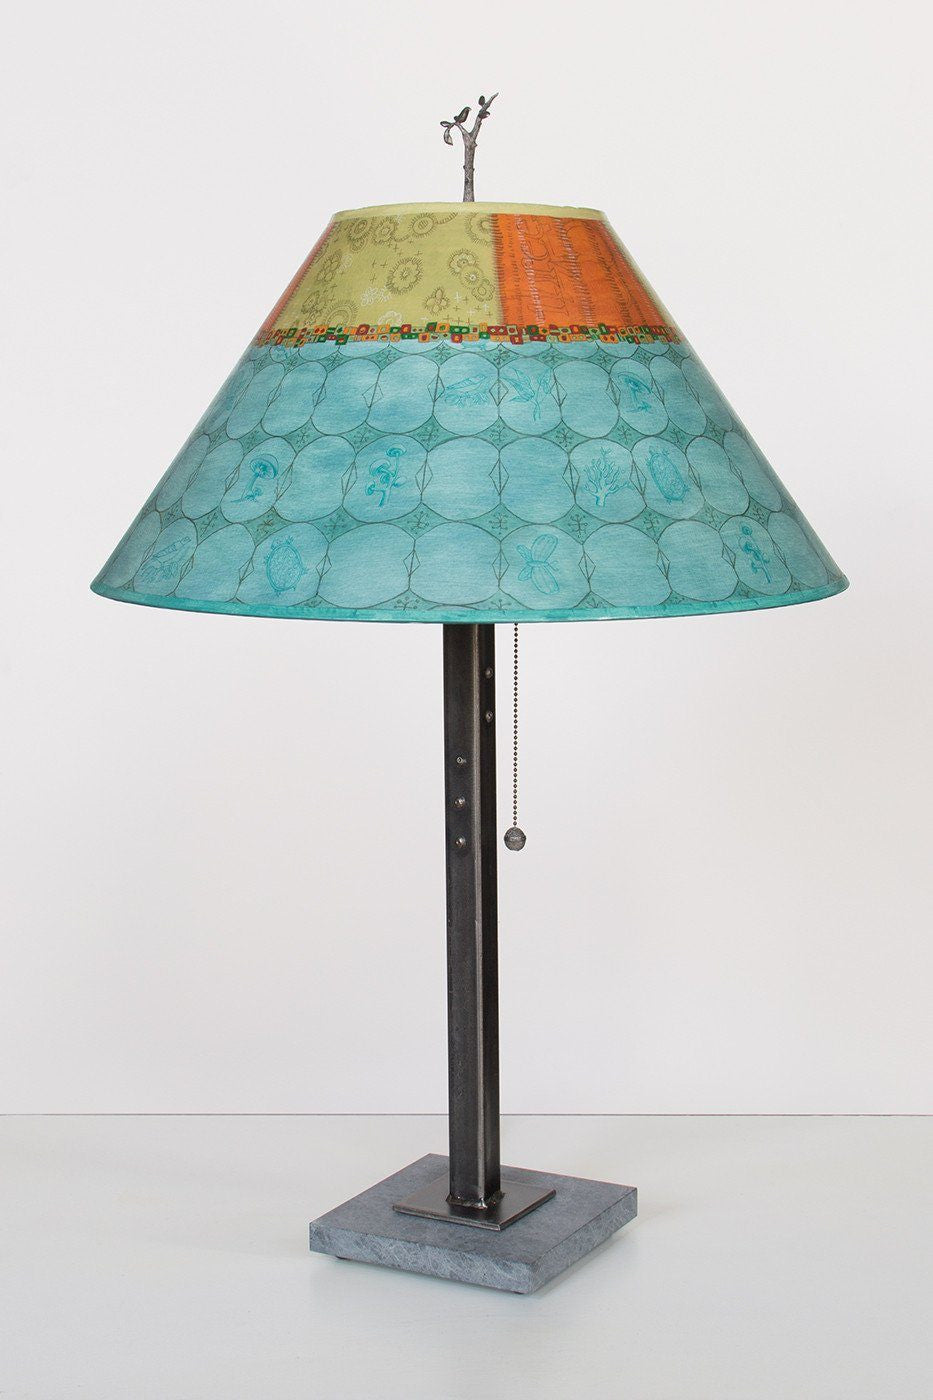 Steel Table Lamp on Italian Marble with Large Conical Shade in Paradise Pool